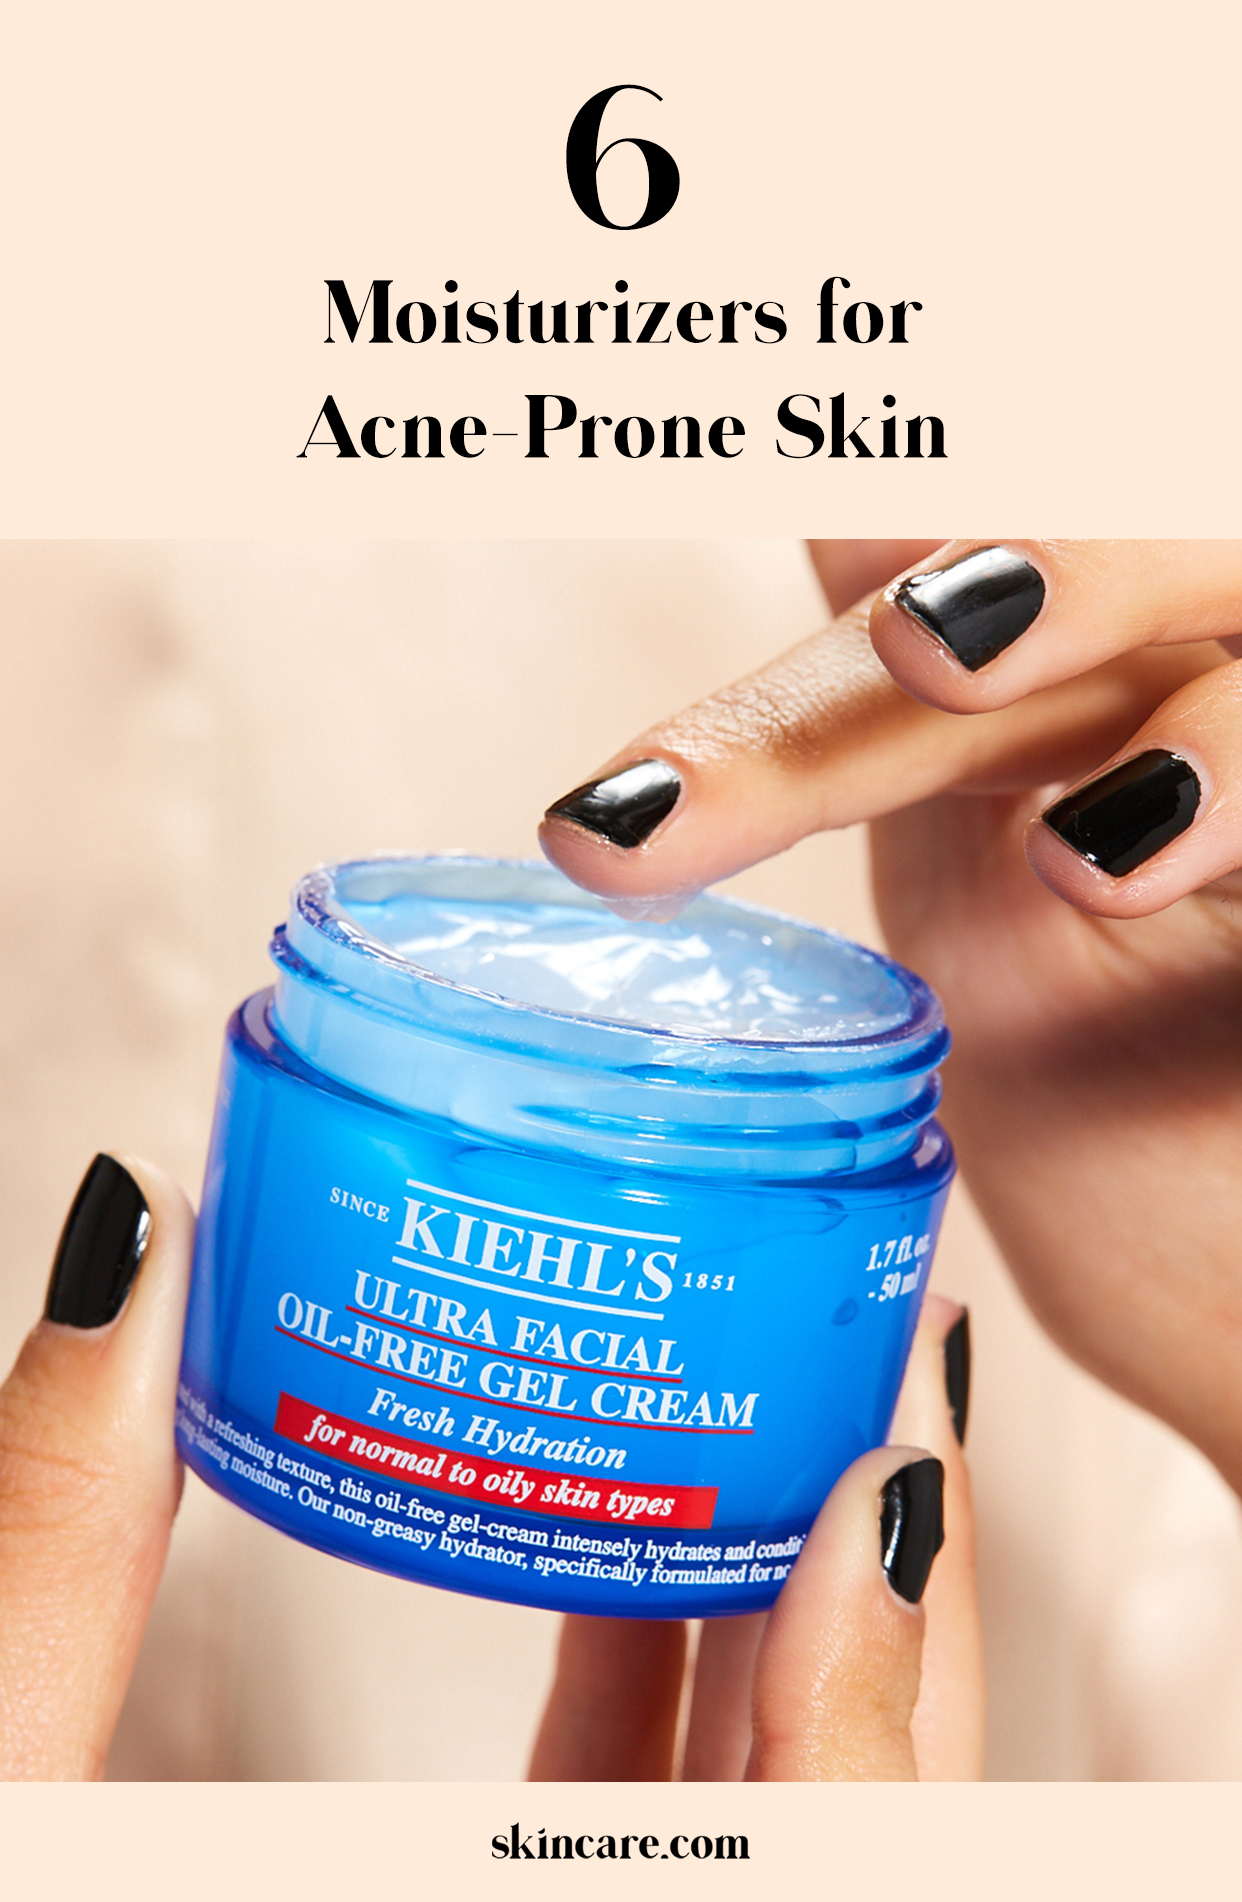 If your skin is oily or prone to acne, a lightweight, non